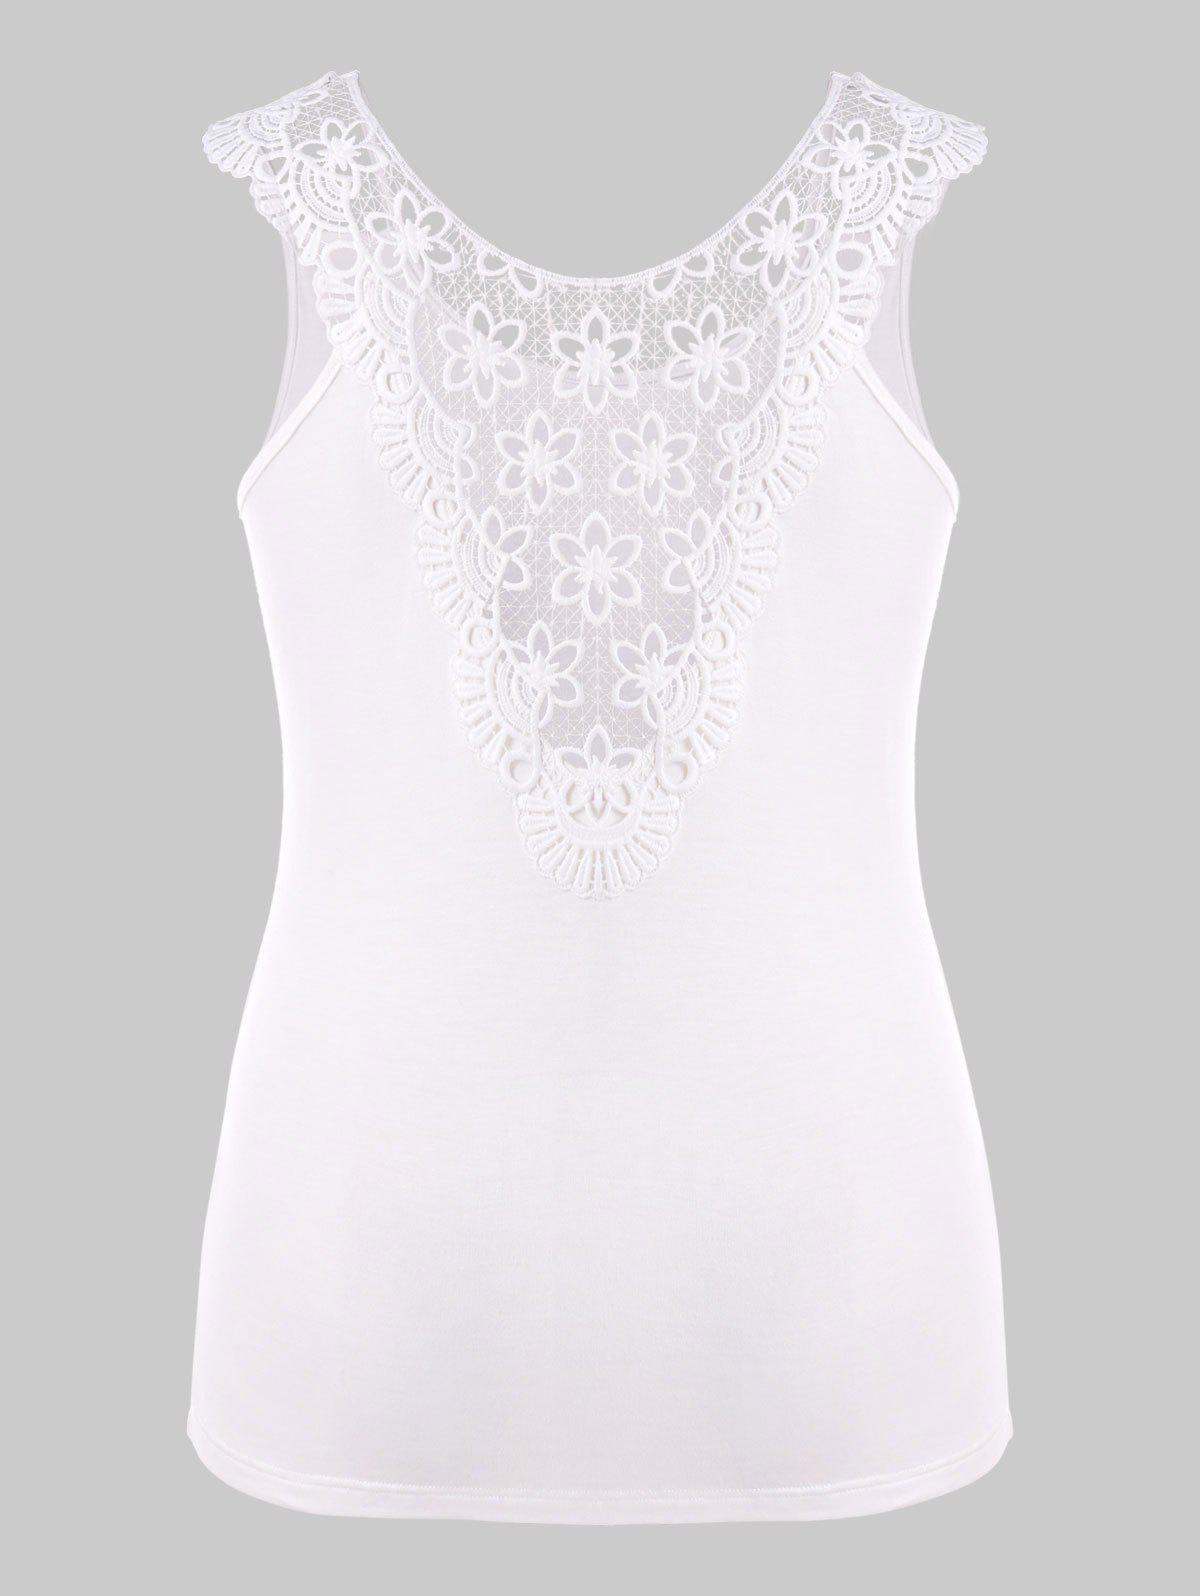 Plus Size Lace Hollow Out T-shirt - WHITE 2X